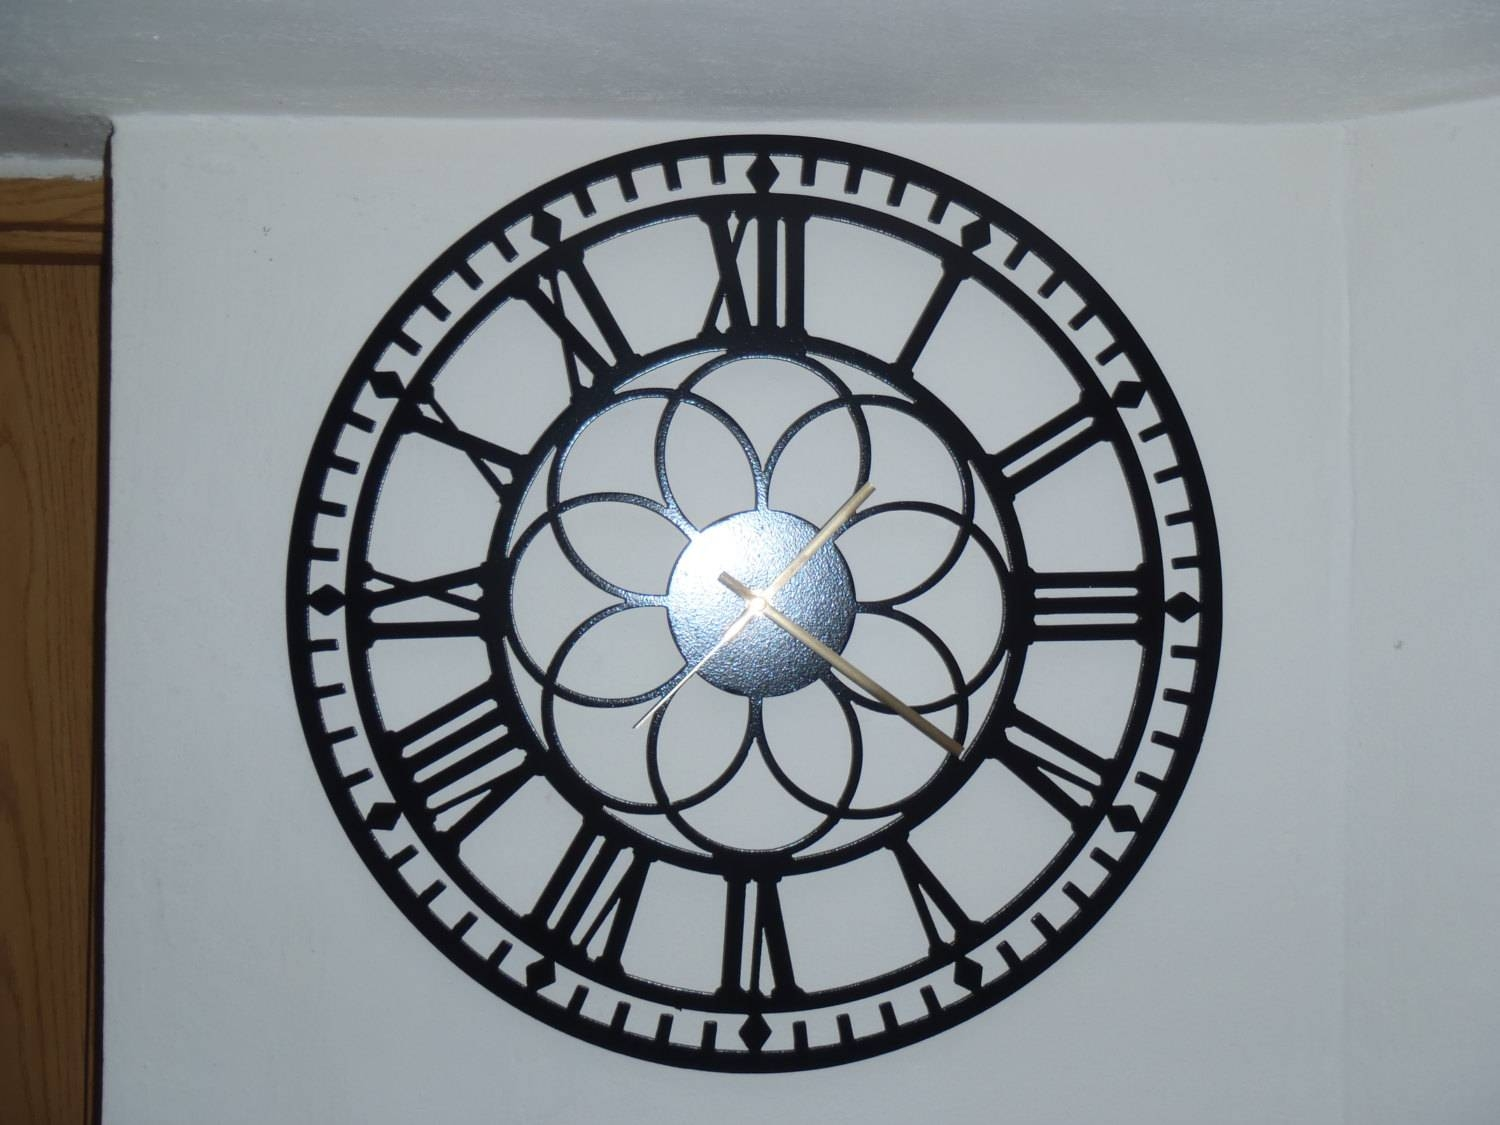 20 Clock Roman Numbers Metal Wall Art Black Metal For Best And Newest Black Metal Wall Art (Gallery 1 of 20)